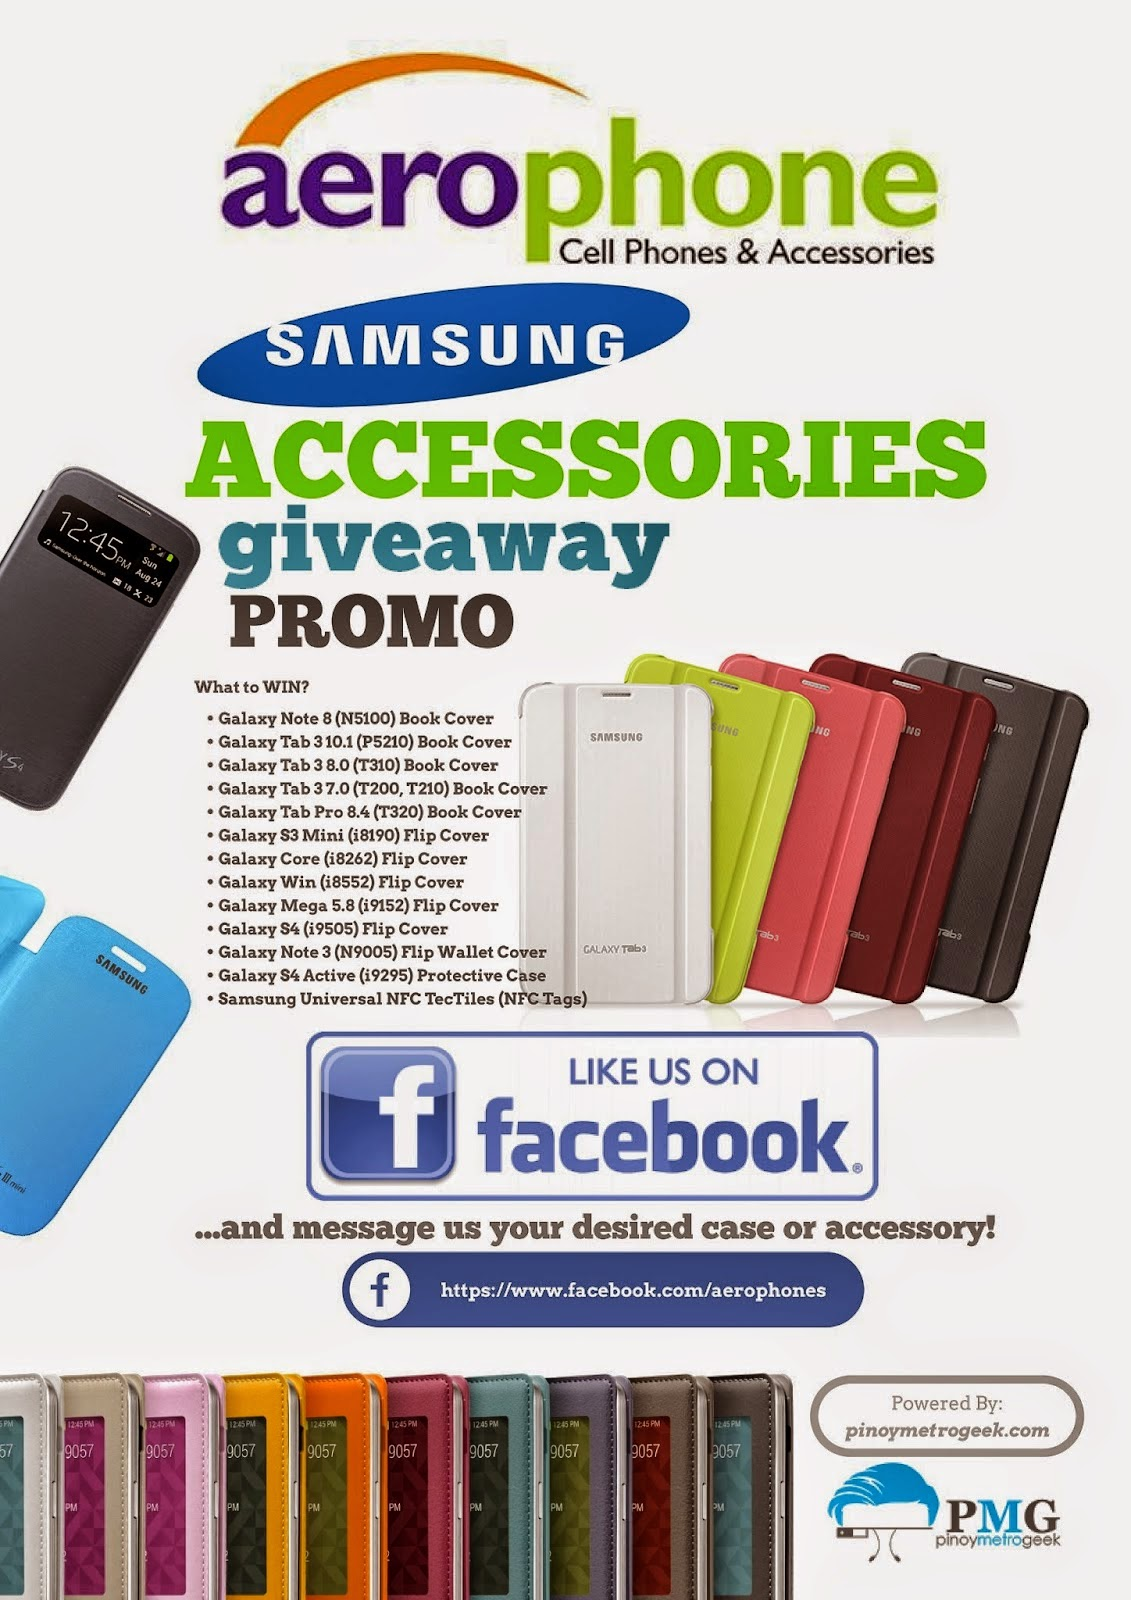 Aerophone Cebu Samsung Smartphone and Tablet Accessories Giveaway Promo